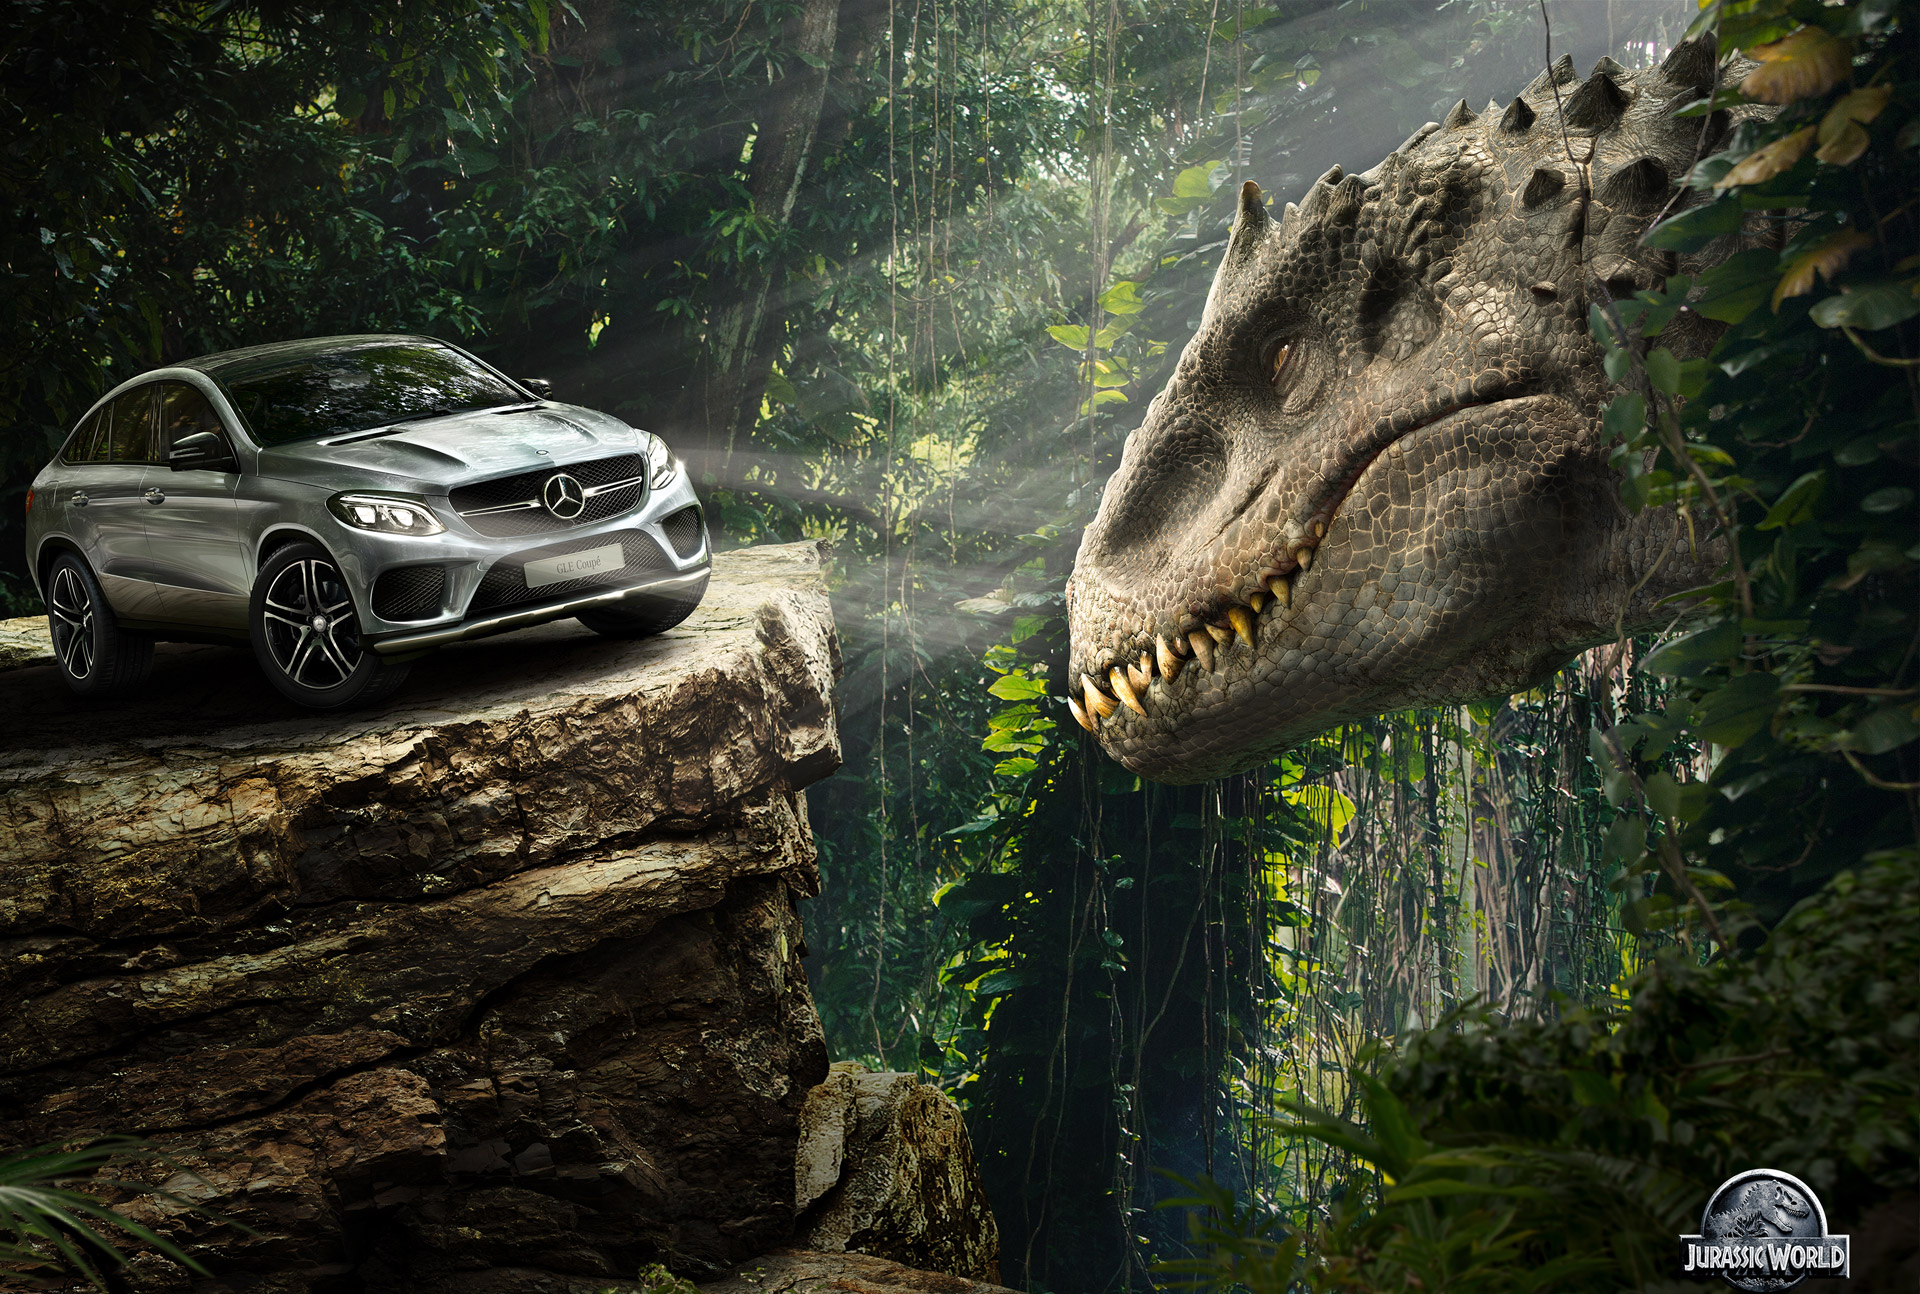 mercedes fleet including unimogs and g63 6x6 starring in 'jurassic